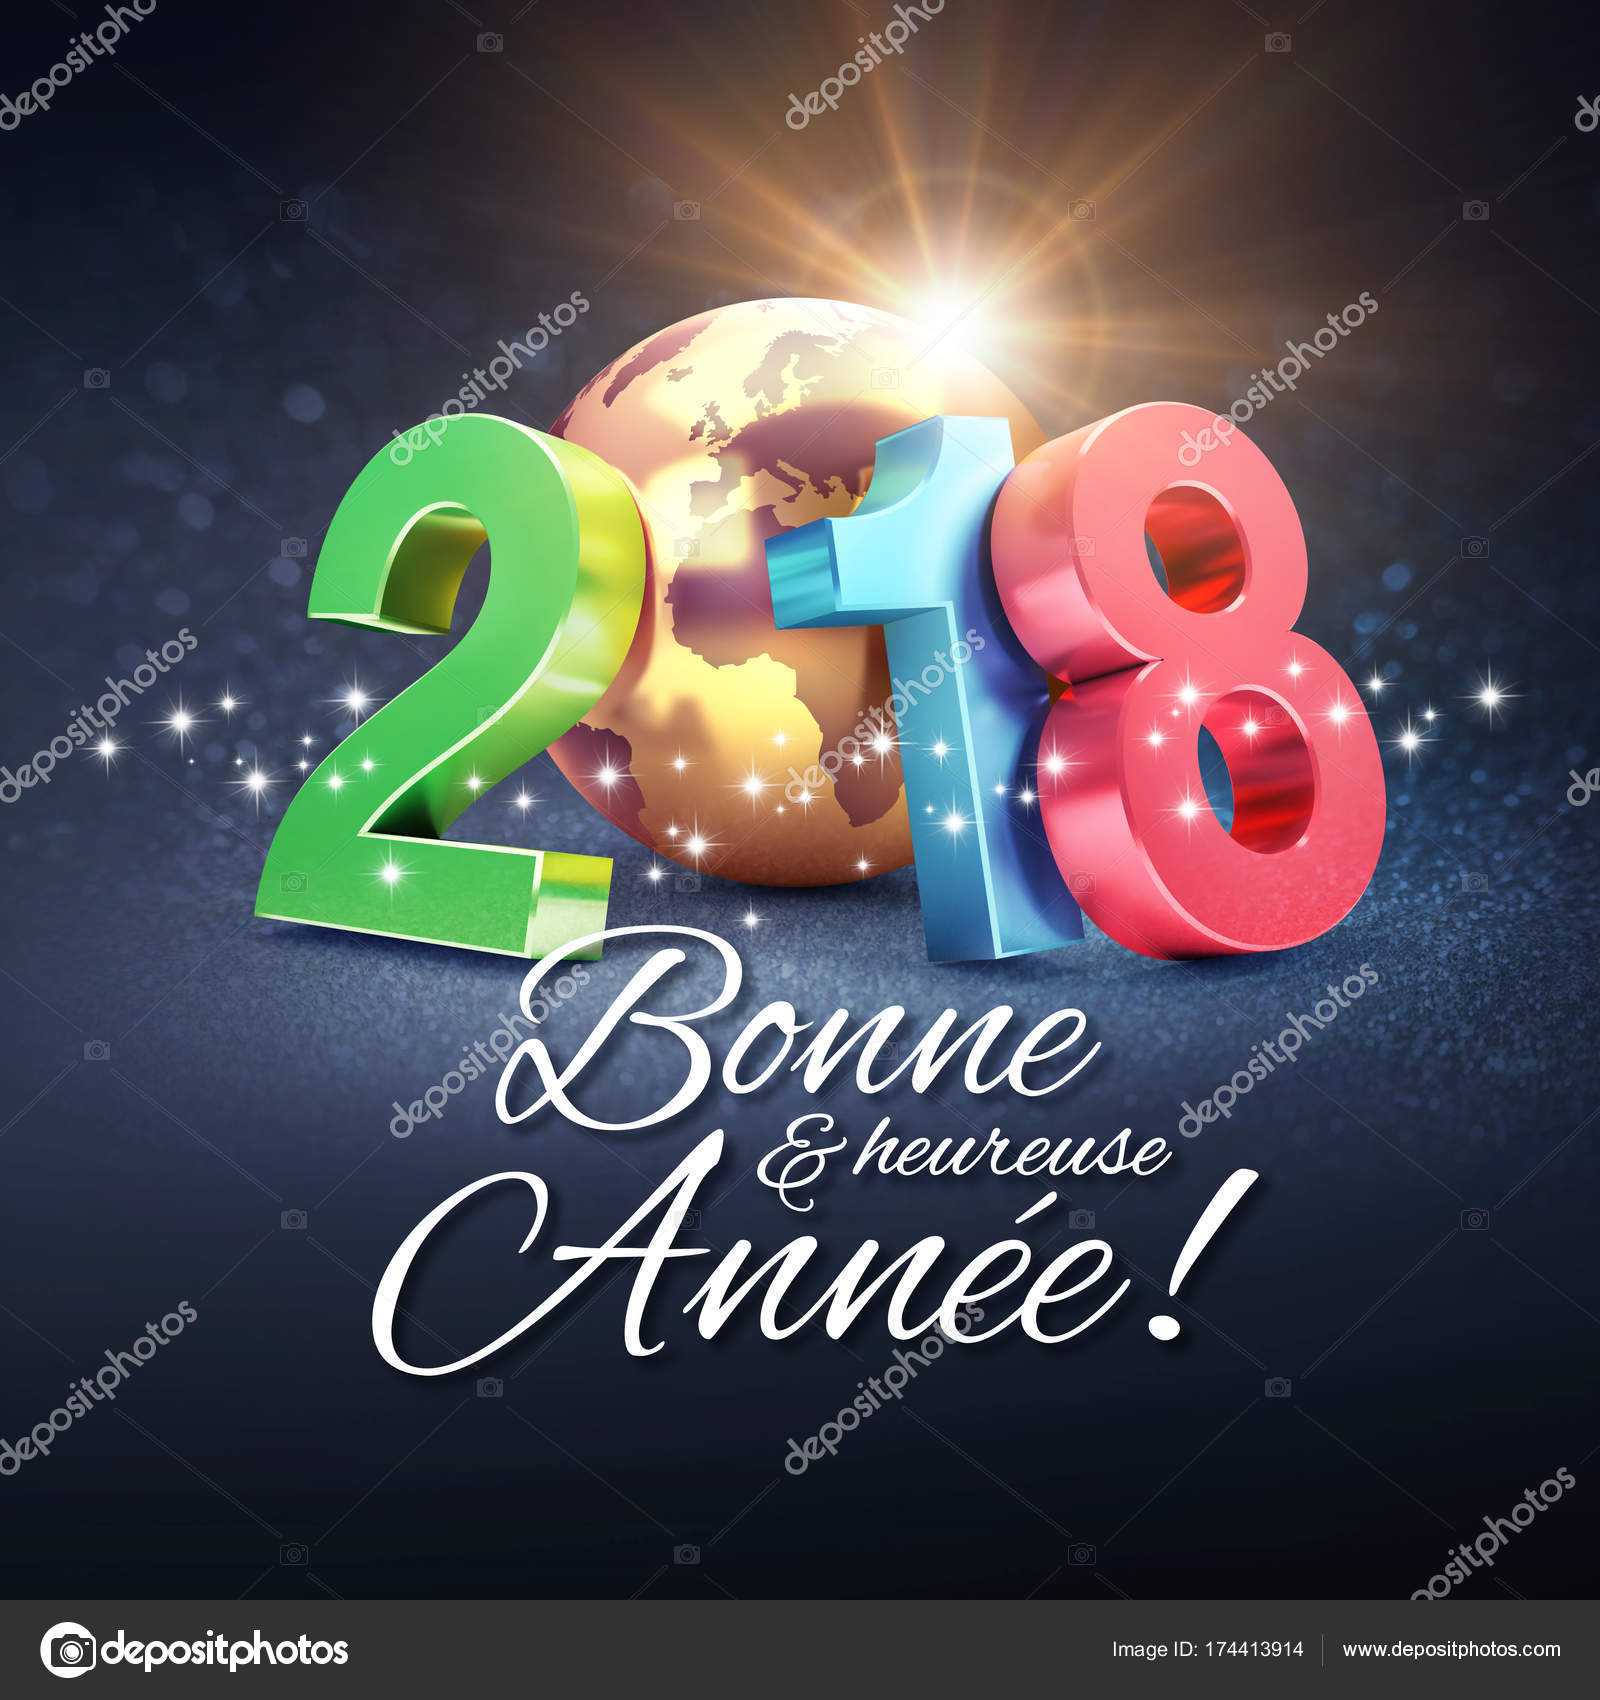 New Year 2018 Greeting Card In French Stock Photo Titoonz 174413914